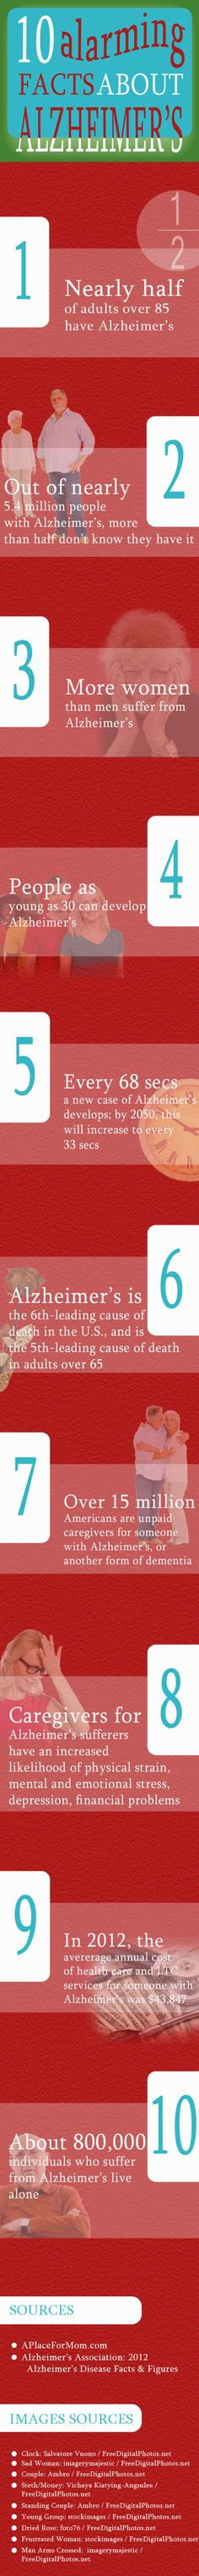 Learn 10 scary facts about Alzheimer's.  http://www.boomercafe.com/learning-the-scary-facts-about-alzheimers-disease/